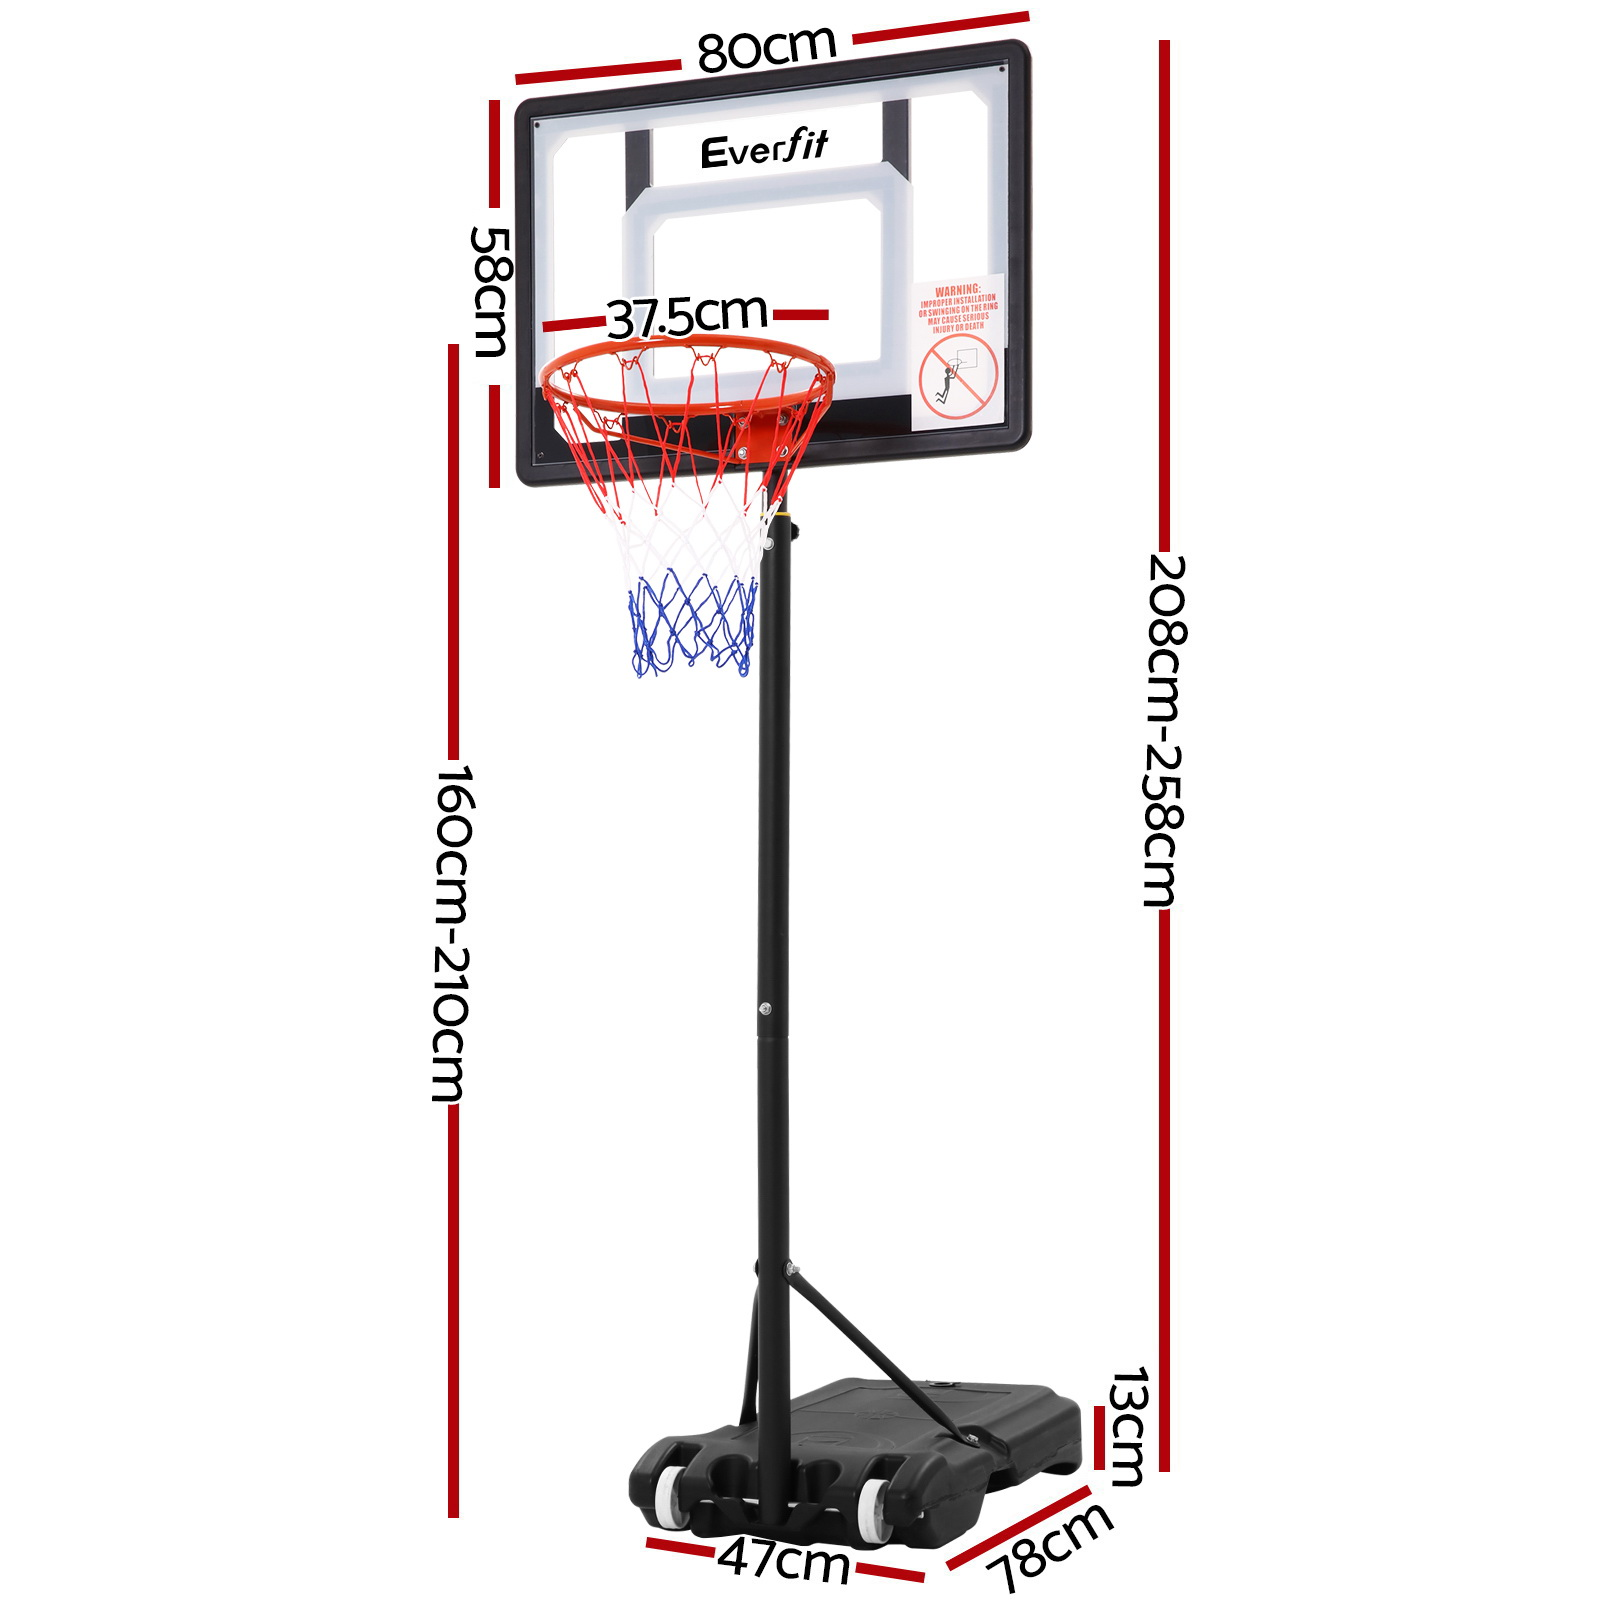 🥇 New Everfit Adjustable Portable Basketball Stand Hoop System Rim ⭐+ Fast Free Shipping 🚀